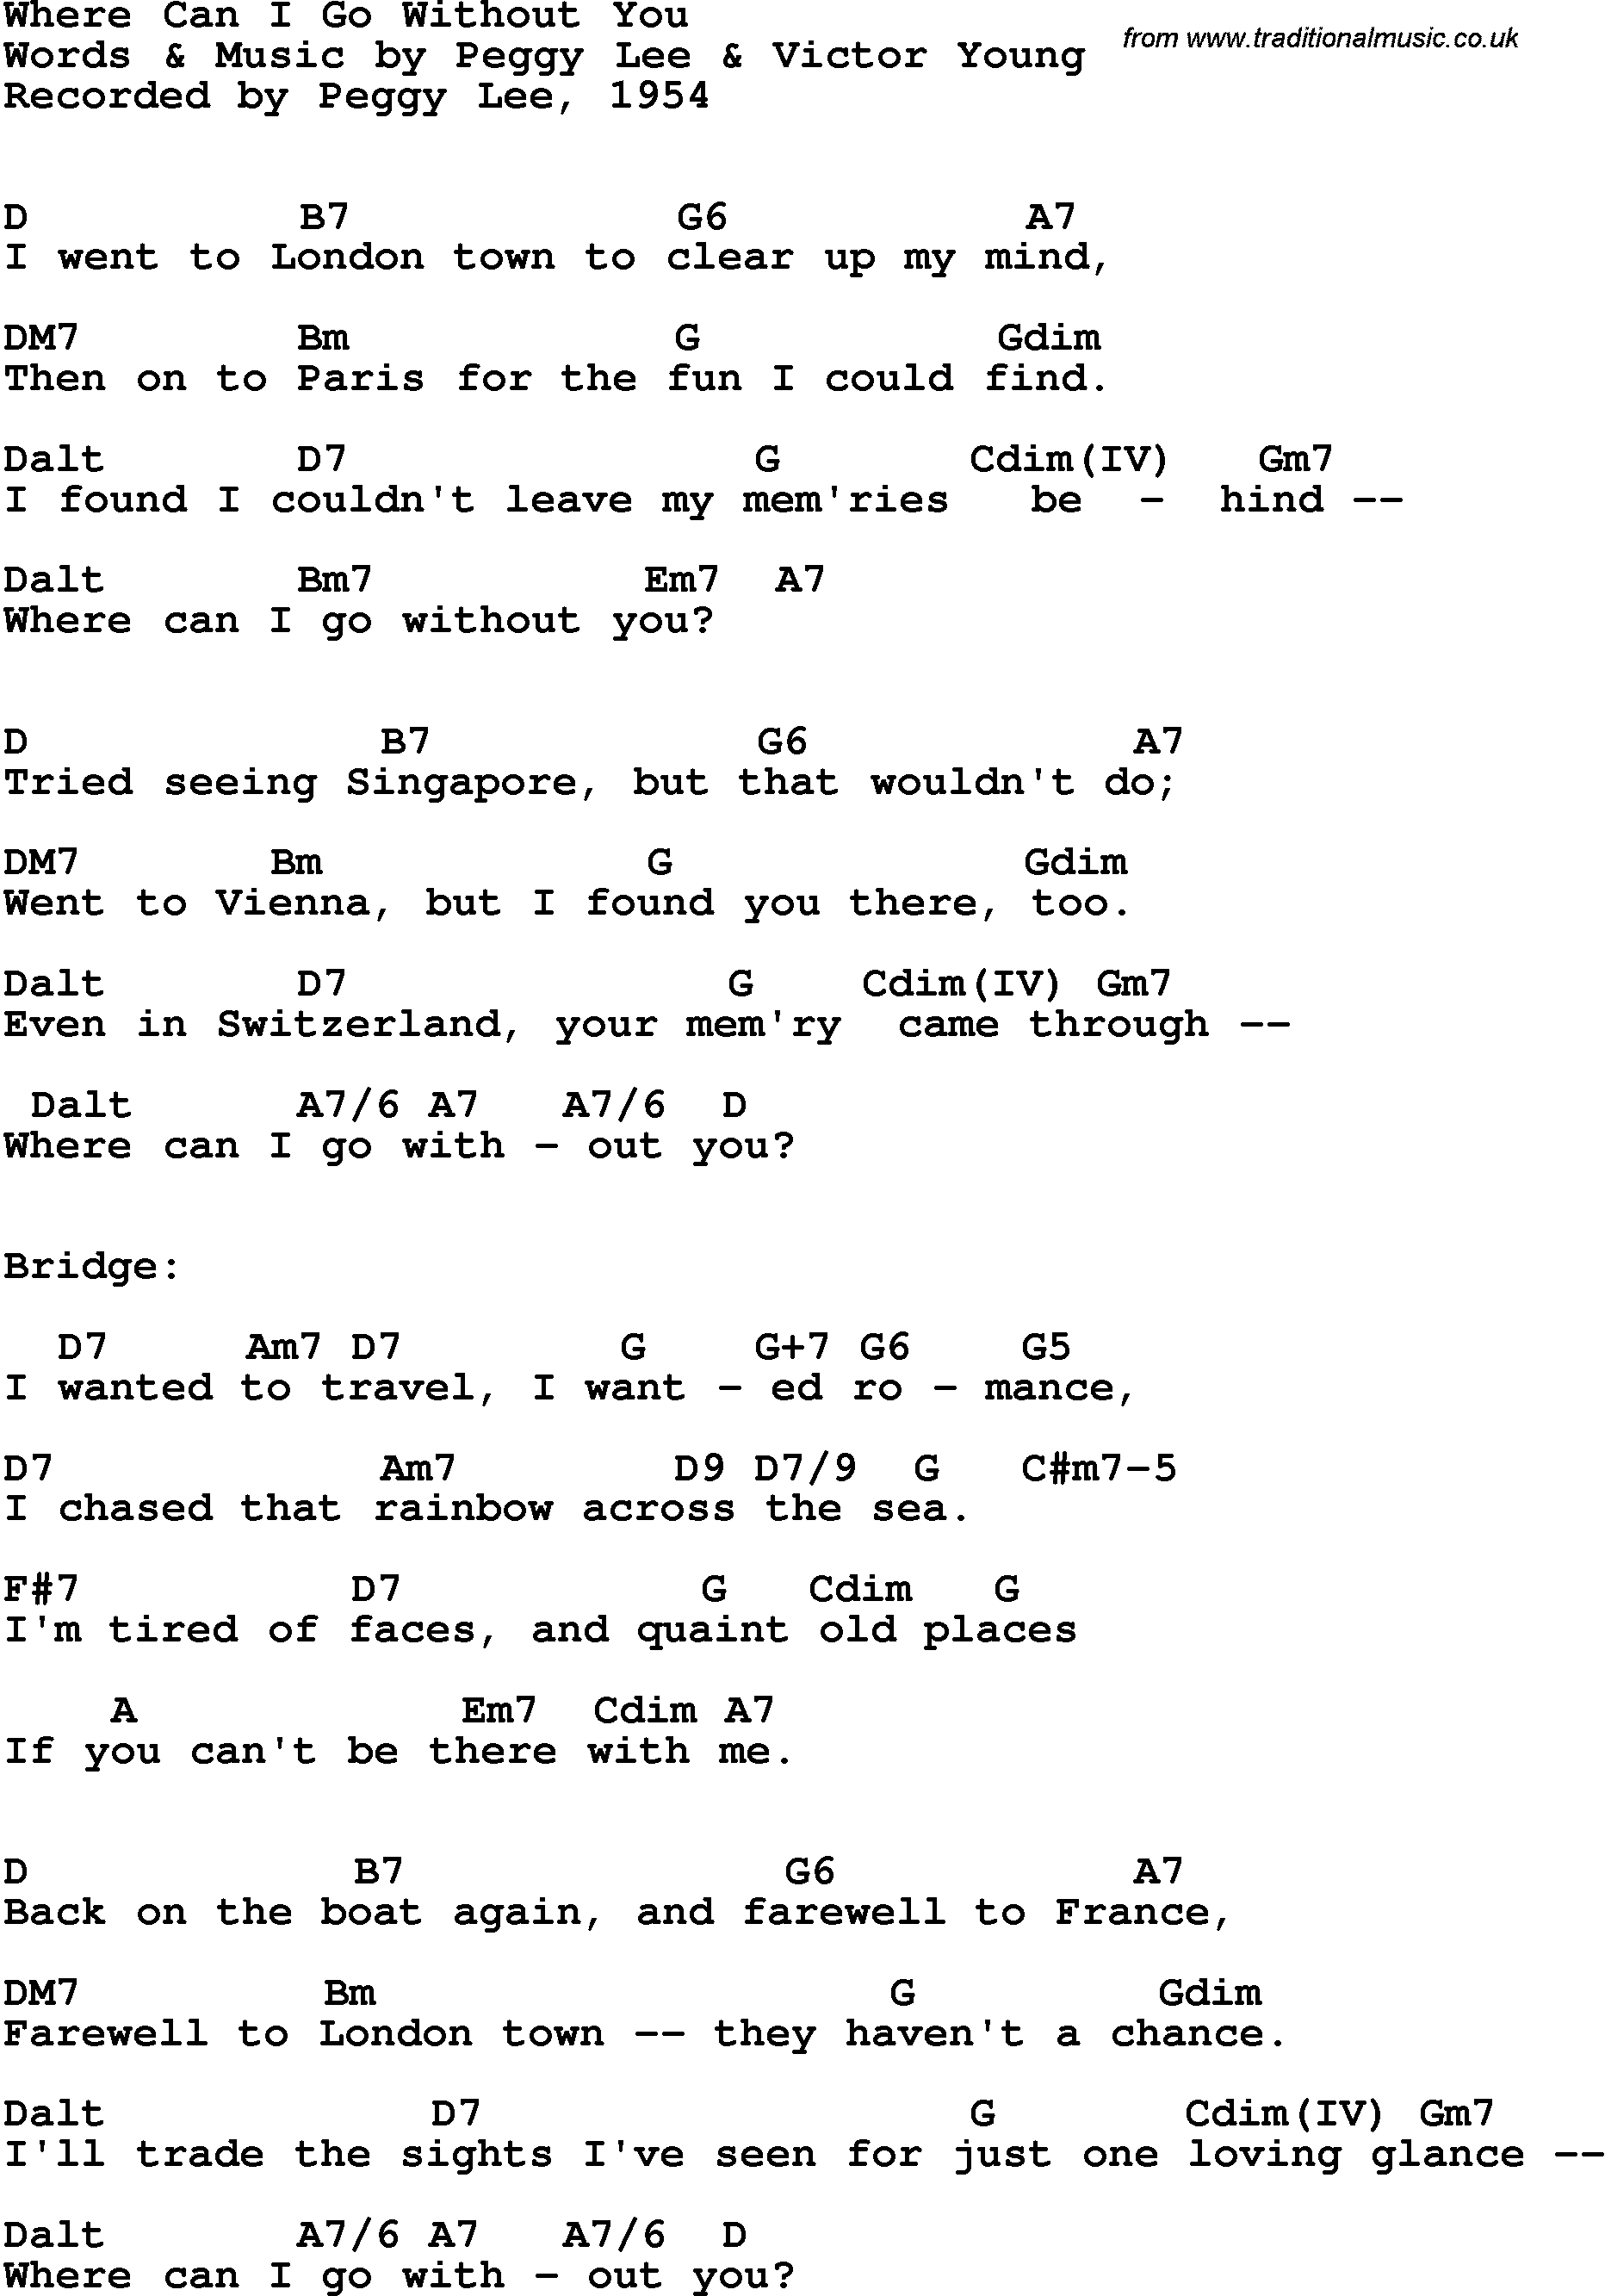 Song Lyrics With Guitar Chords For Where Can I Go Without You